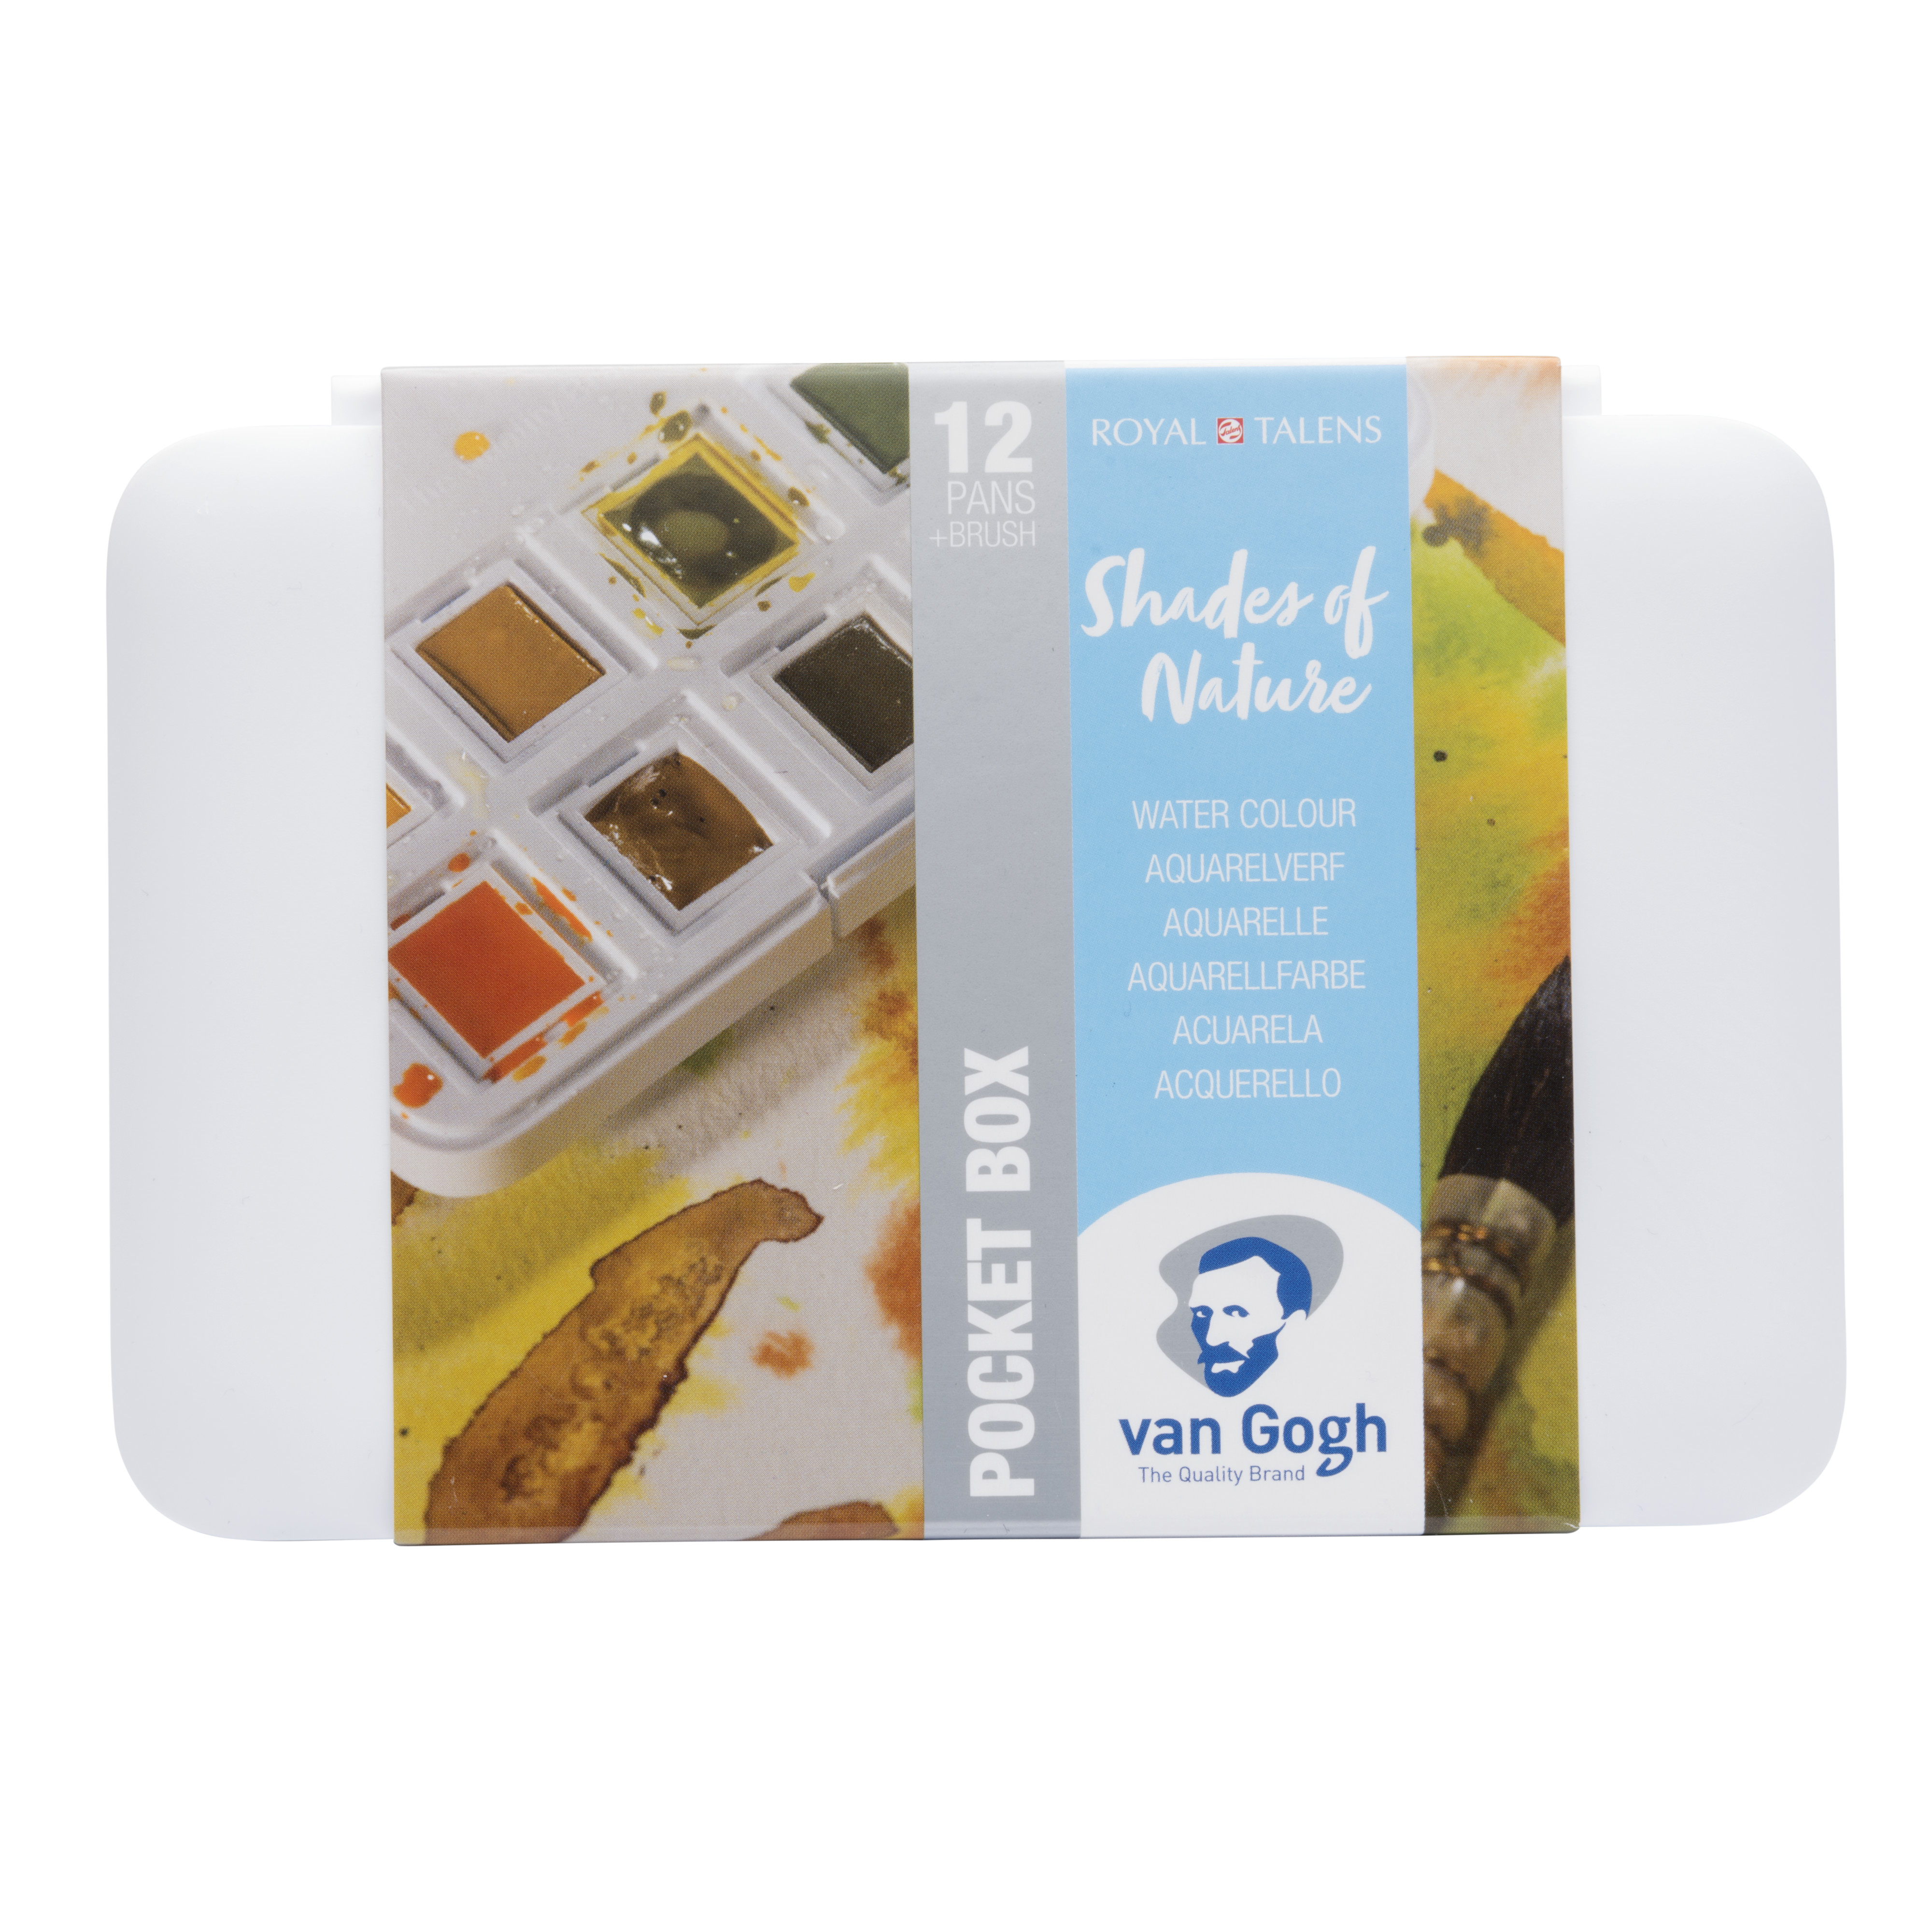 Van Gogh Water Colour Pocket Box Shades of Nature with 12 Colours in Half Pans